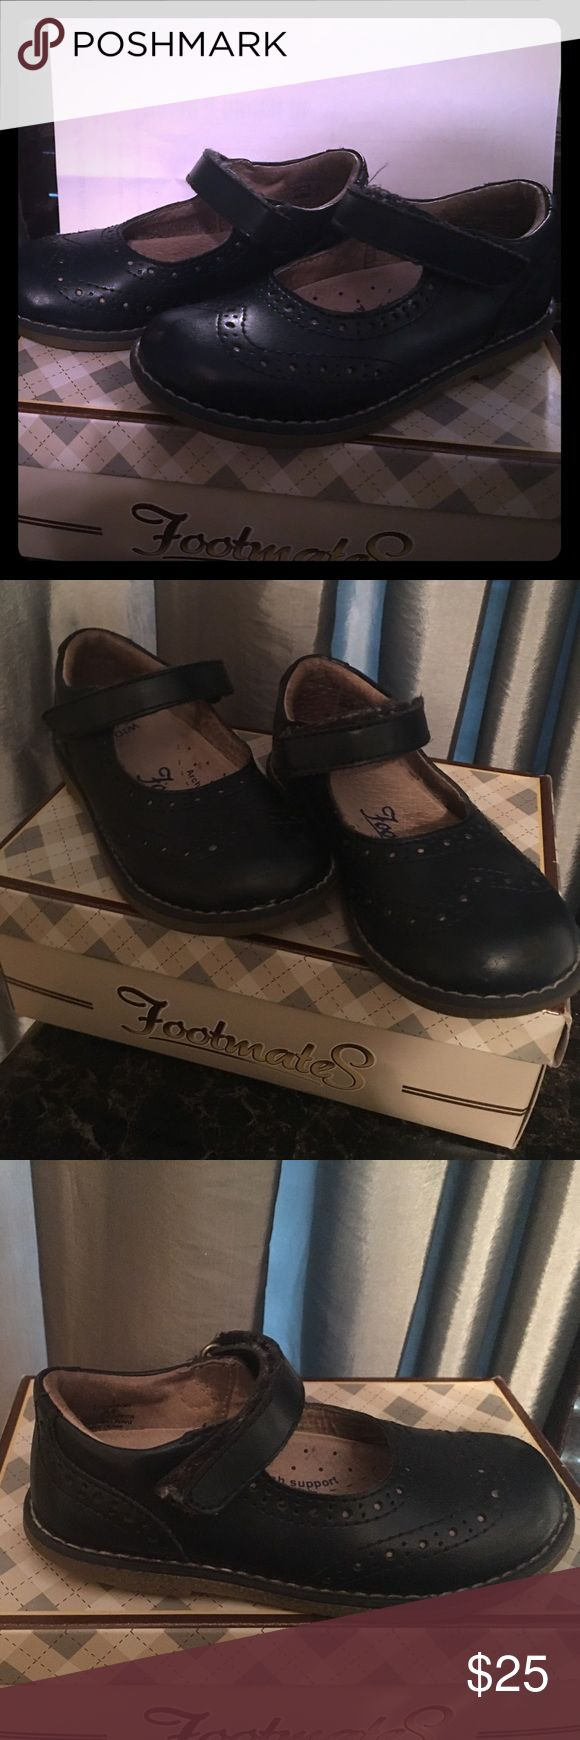 Petite feet casual school girl shoes I purchased them from the original petite feet children store .They are very supportive last very long cute to wear with dresses and school uniforms or whatever your choice maybe. petite feet Shoes Dress Shoes